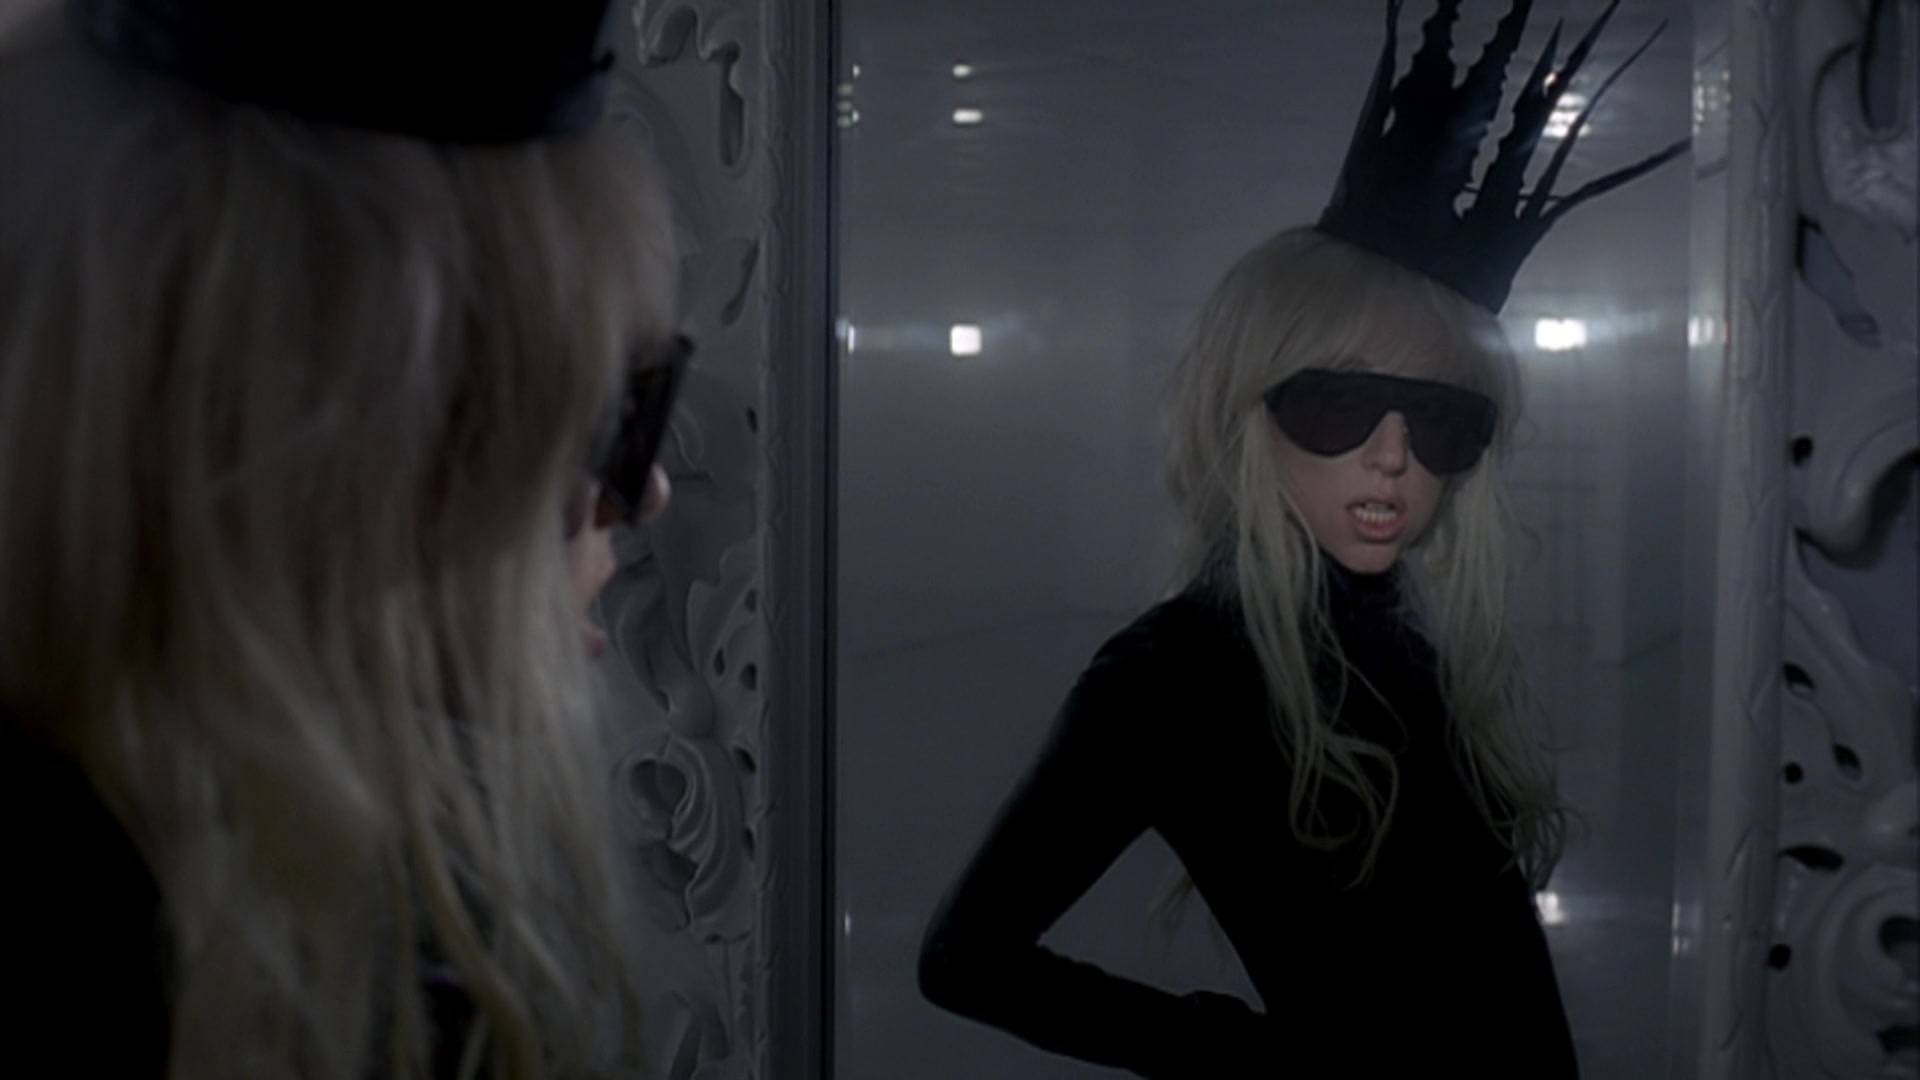 File:Lady Gaga - Bad Romance 017.jpg